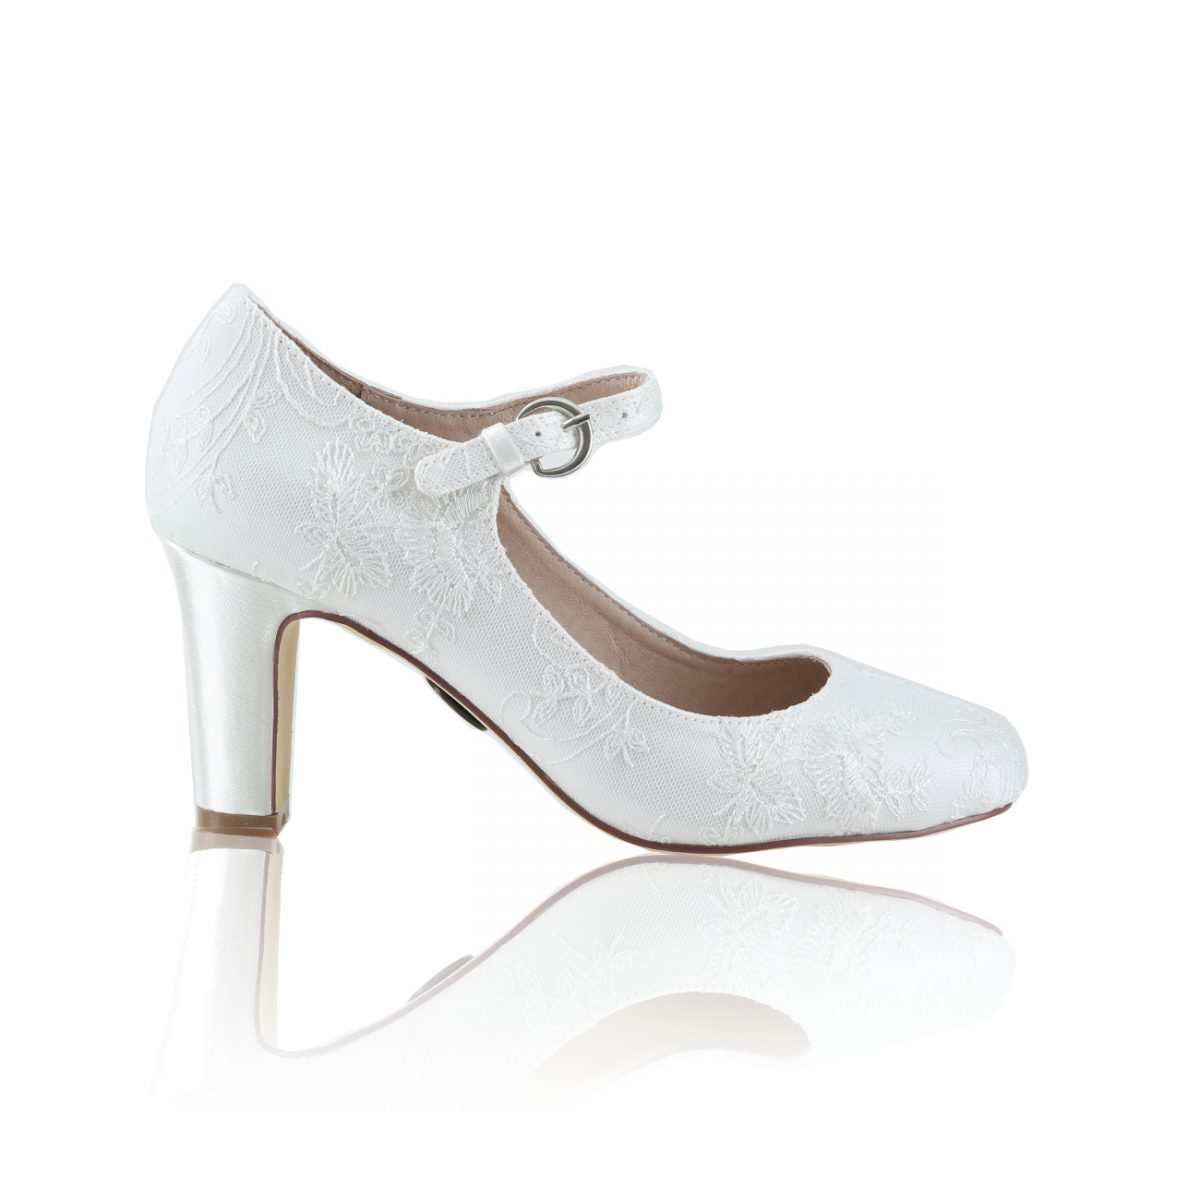 Perfect Bridal Martha Shoes - Satin/Lace